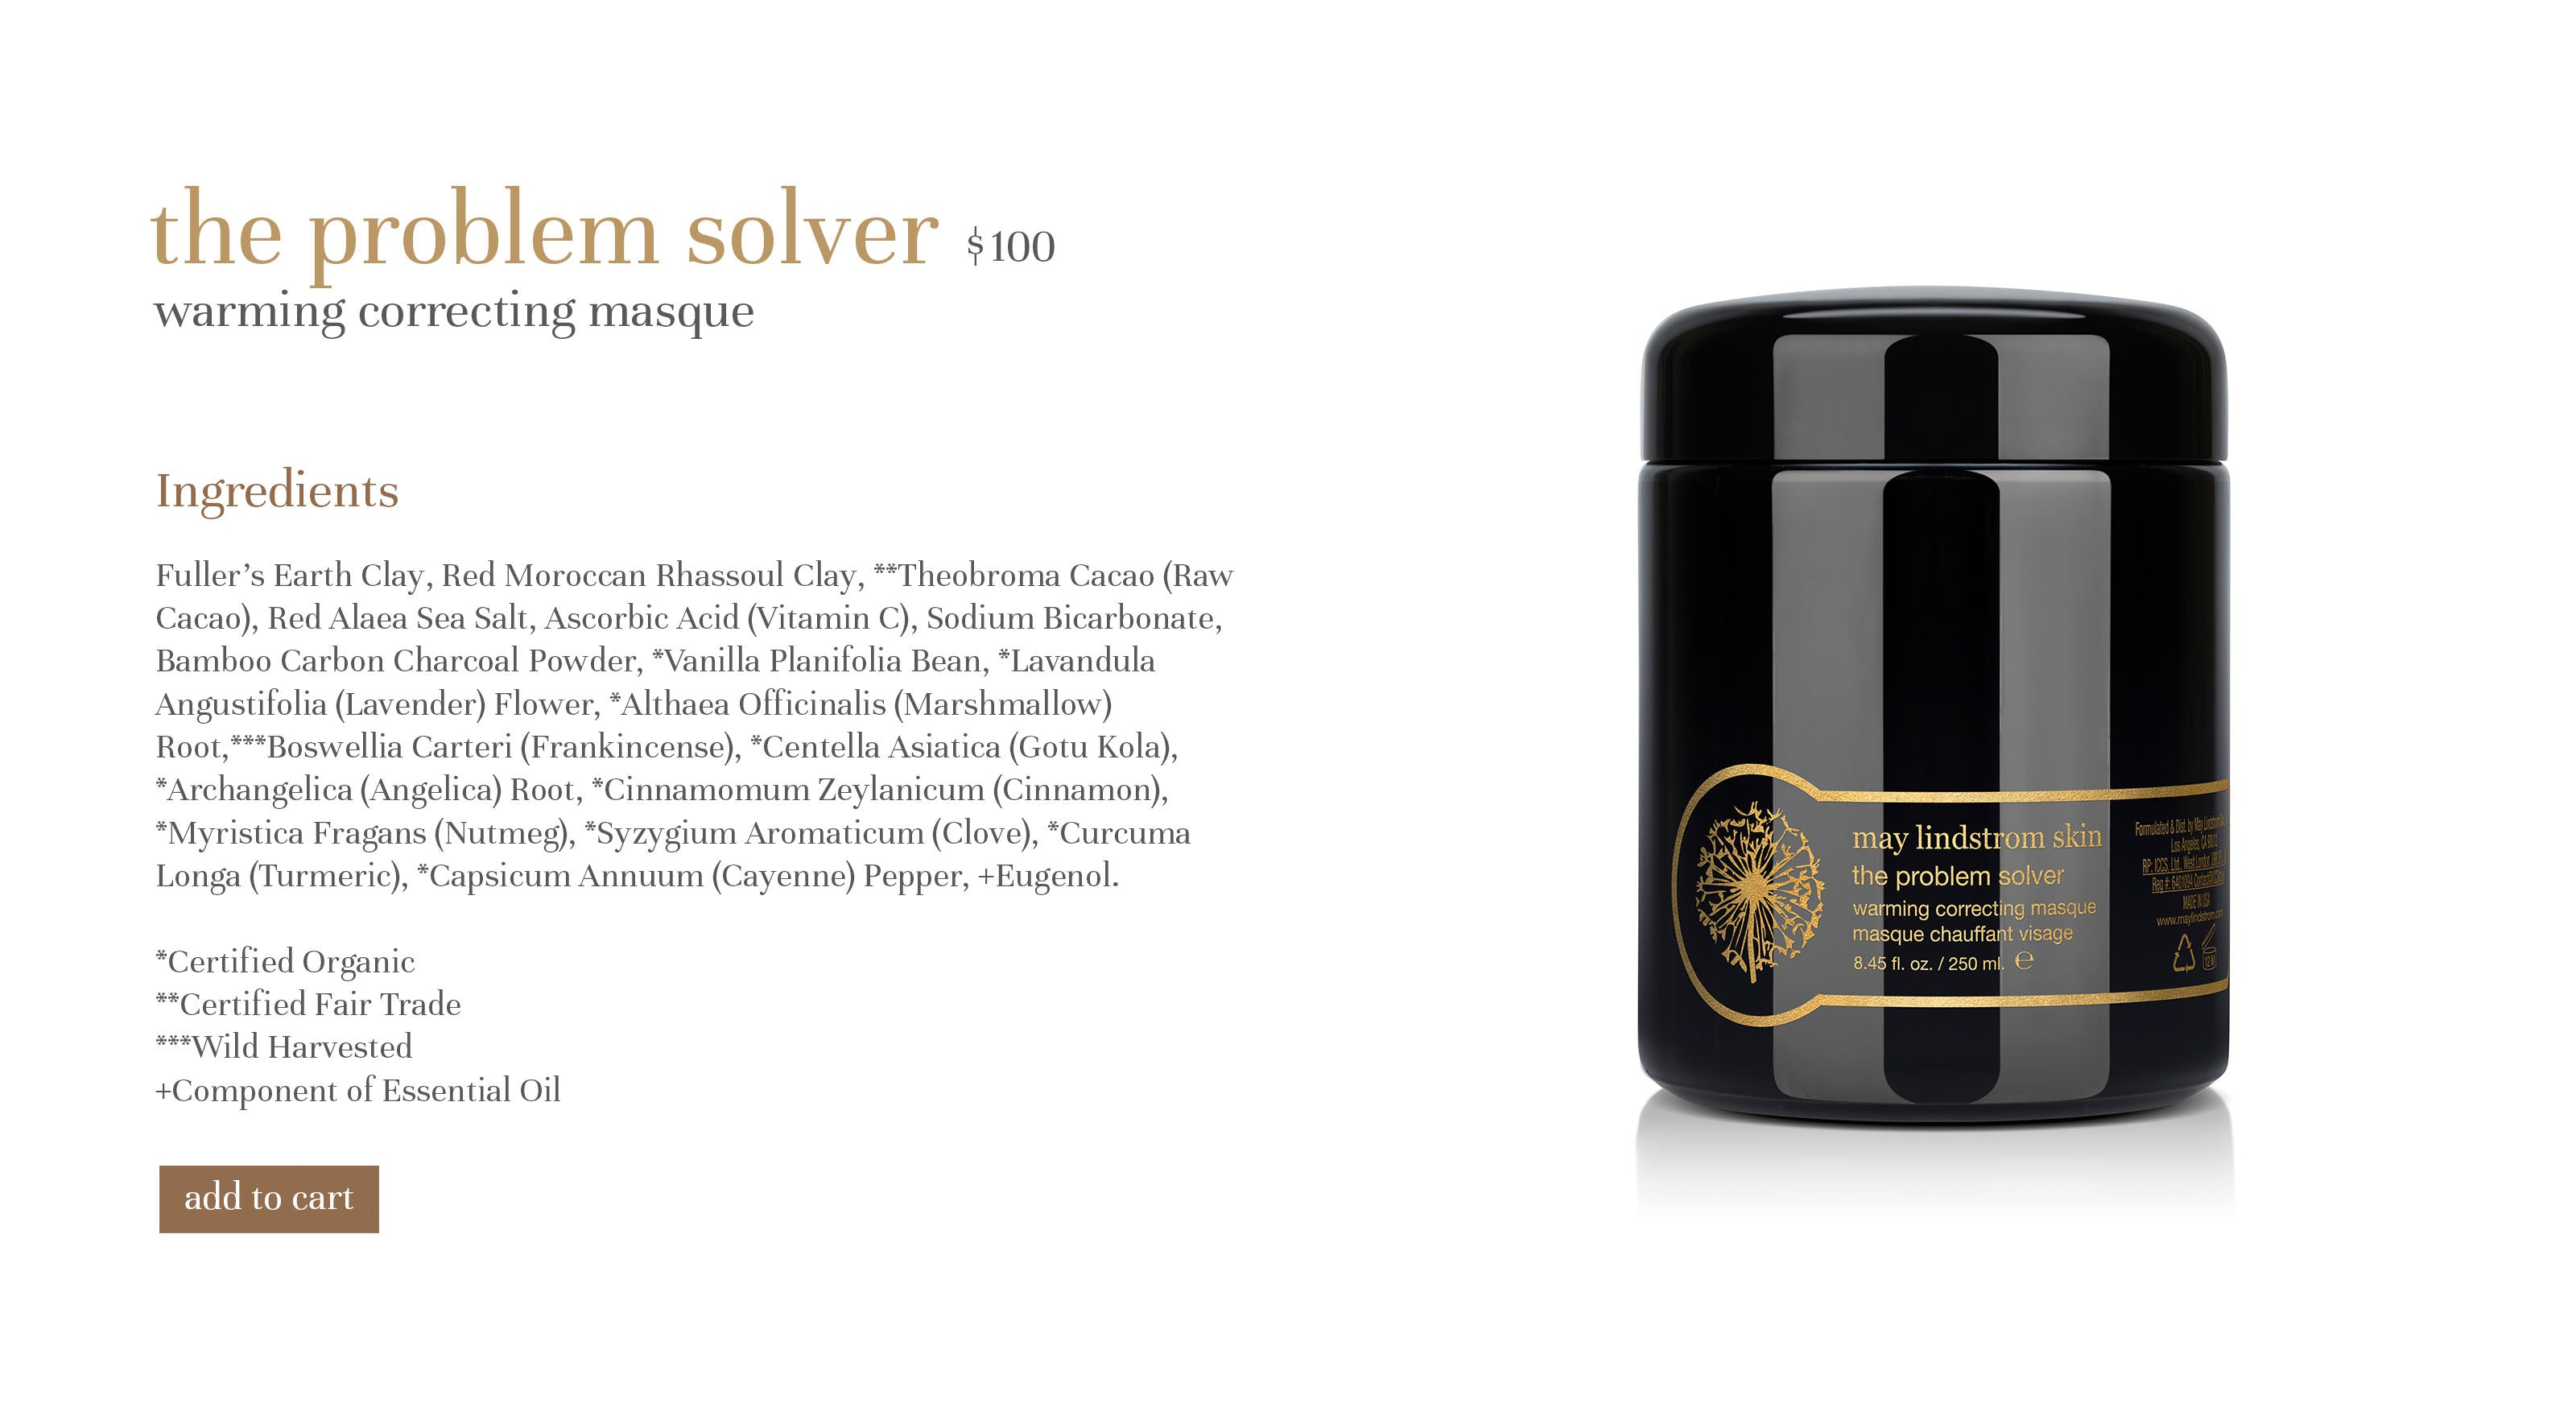 the problem solver $90 warming correcting masque Ingredients Fuller's Earth Clay, Red Moroccan Rhassoul Clay, **Theobroma Cacao (Raw Cacao), Red Alaea Sea Salt, Ascorbic Acid (Vitamin C), Sodium Bicarbonate, Bamboo Carbon Charcoal Powder, *Vanilla Planifolia Bean, *Lavandula Angustifolia (Lavender) Flower, *Althaea Officinalis (Marshmallow) Root,***Boswellia Carteri (Frankincense), *Centella Asiatica (Gotu Kola), *Archangelica (Angelica) Root, *Cinnamomum Zeylanicum (Cinnamon), *Myristica Fragans (Nutmeg), *Syzygium Aromaticum (Clove), *Curcuma Longa (Turmeric), *Capsicum Annuum (Cayenne) Pepper, +Eugenol. *Certified Organic **Certified Fair Trade ***Wild Harvested +Component of Essential Oil